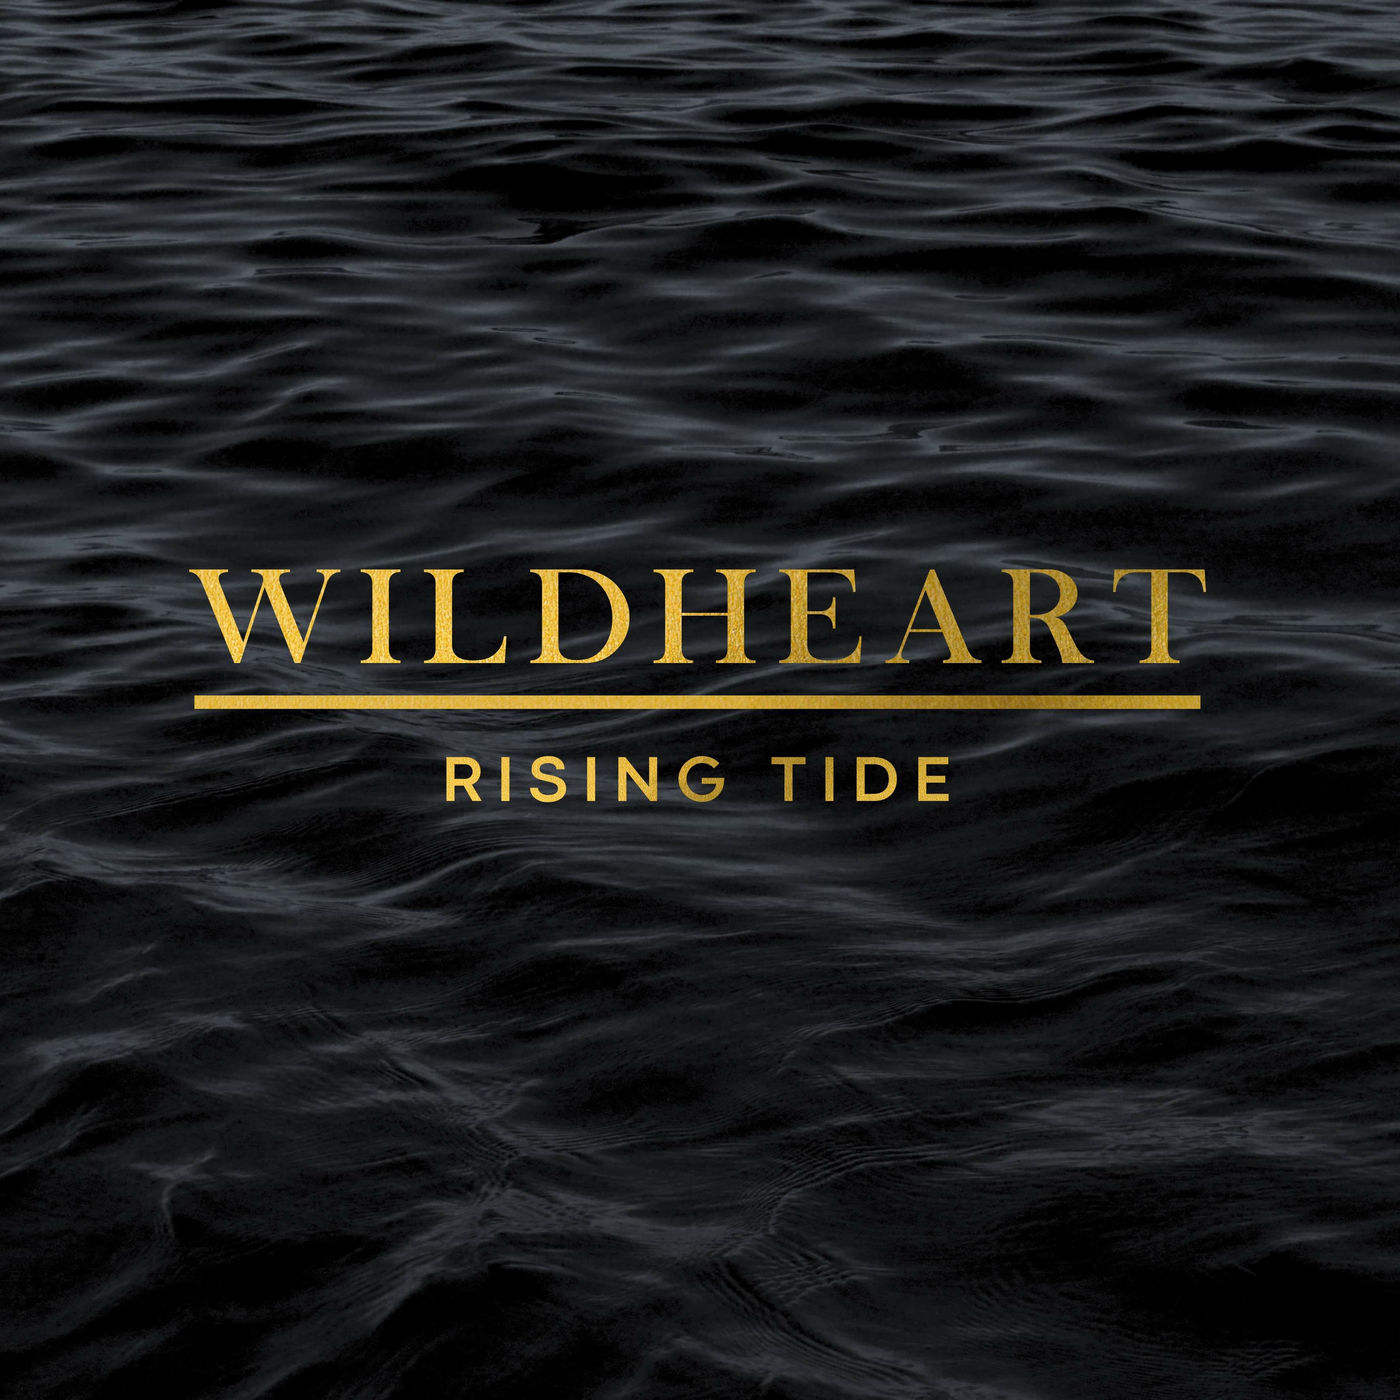 Wildheart - Rising Tide [single] (2019)